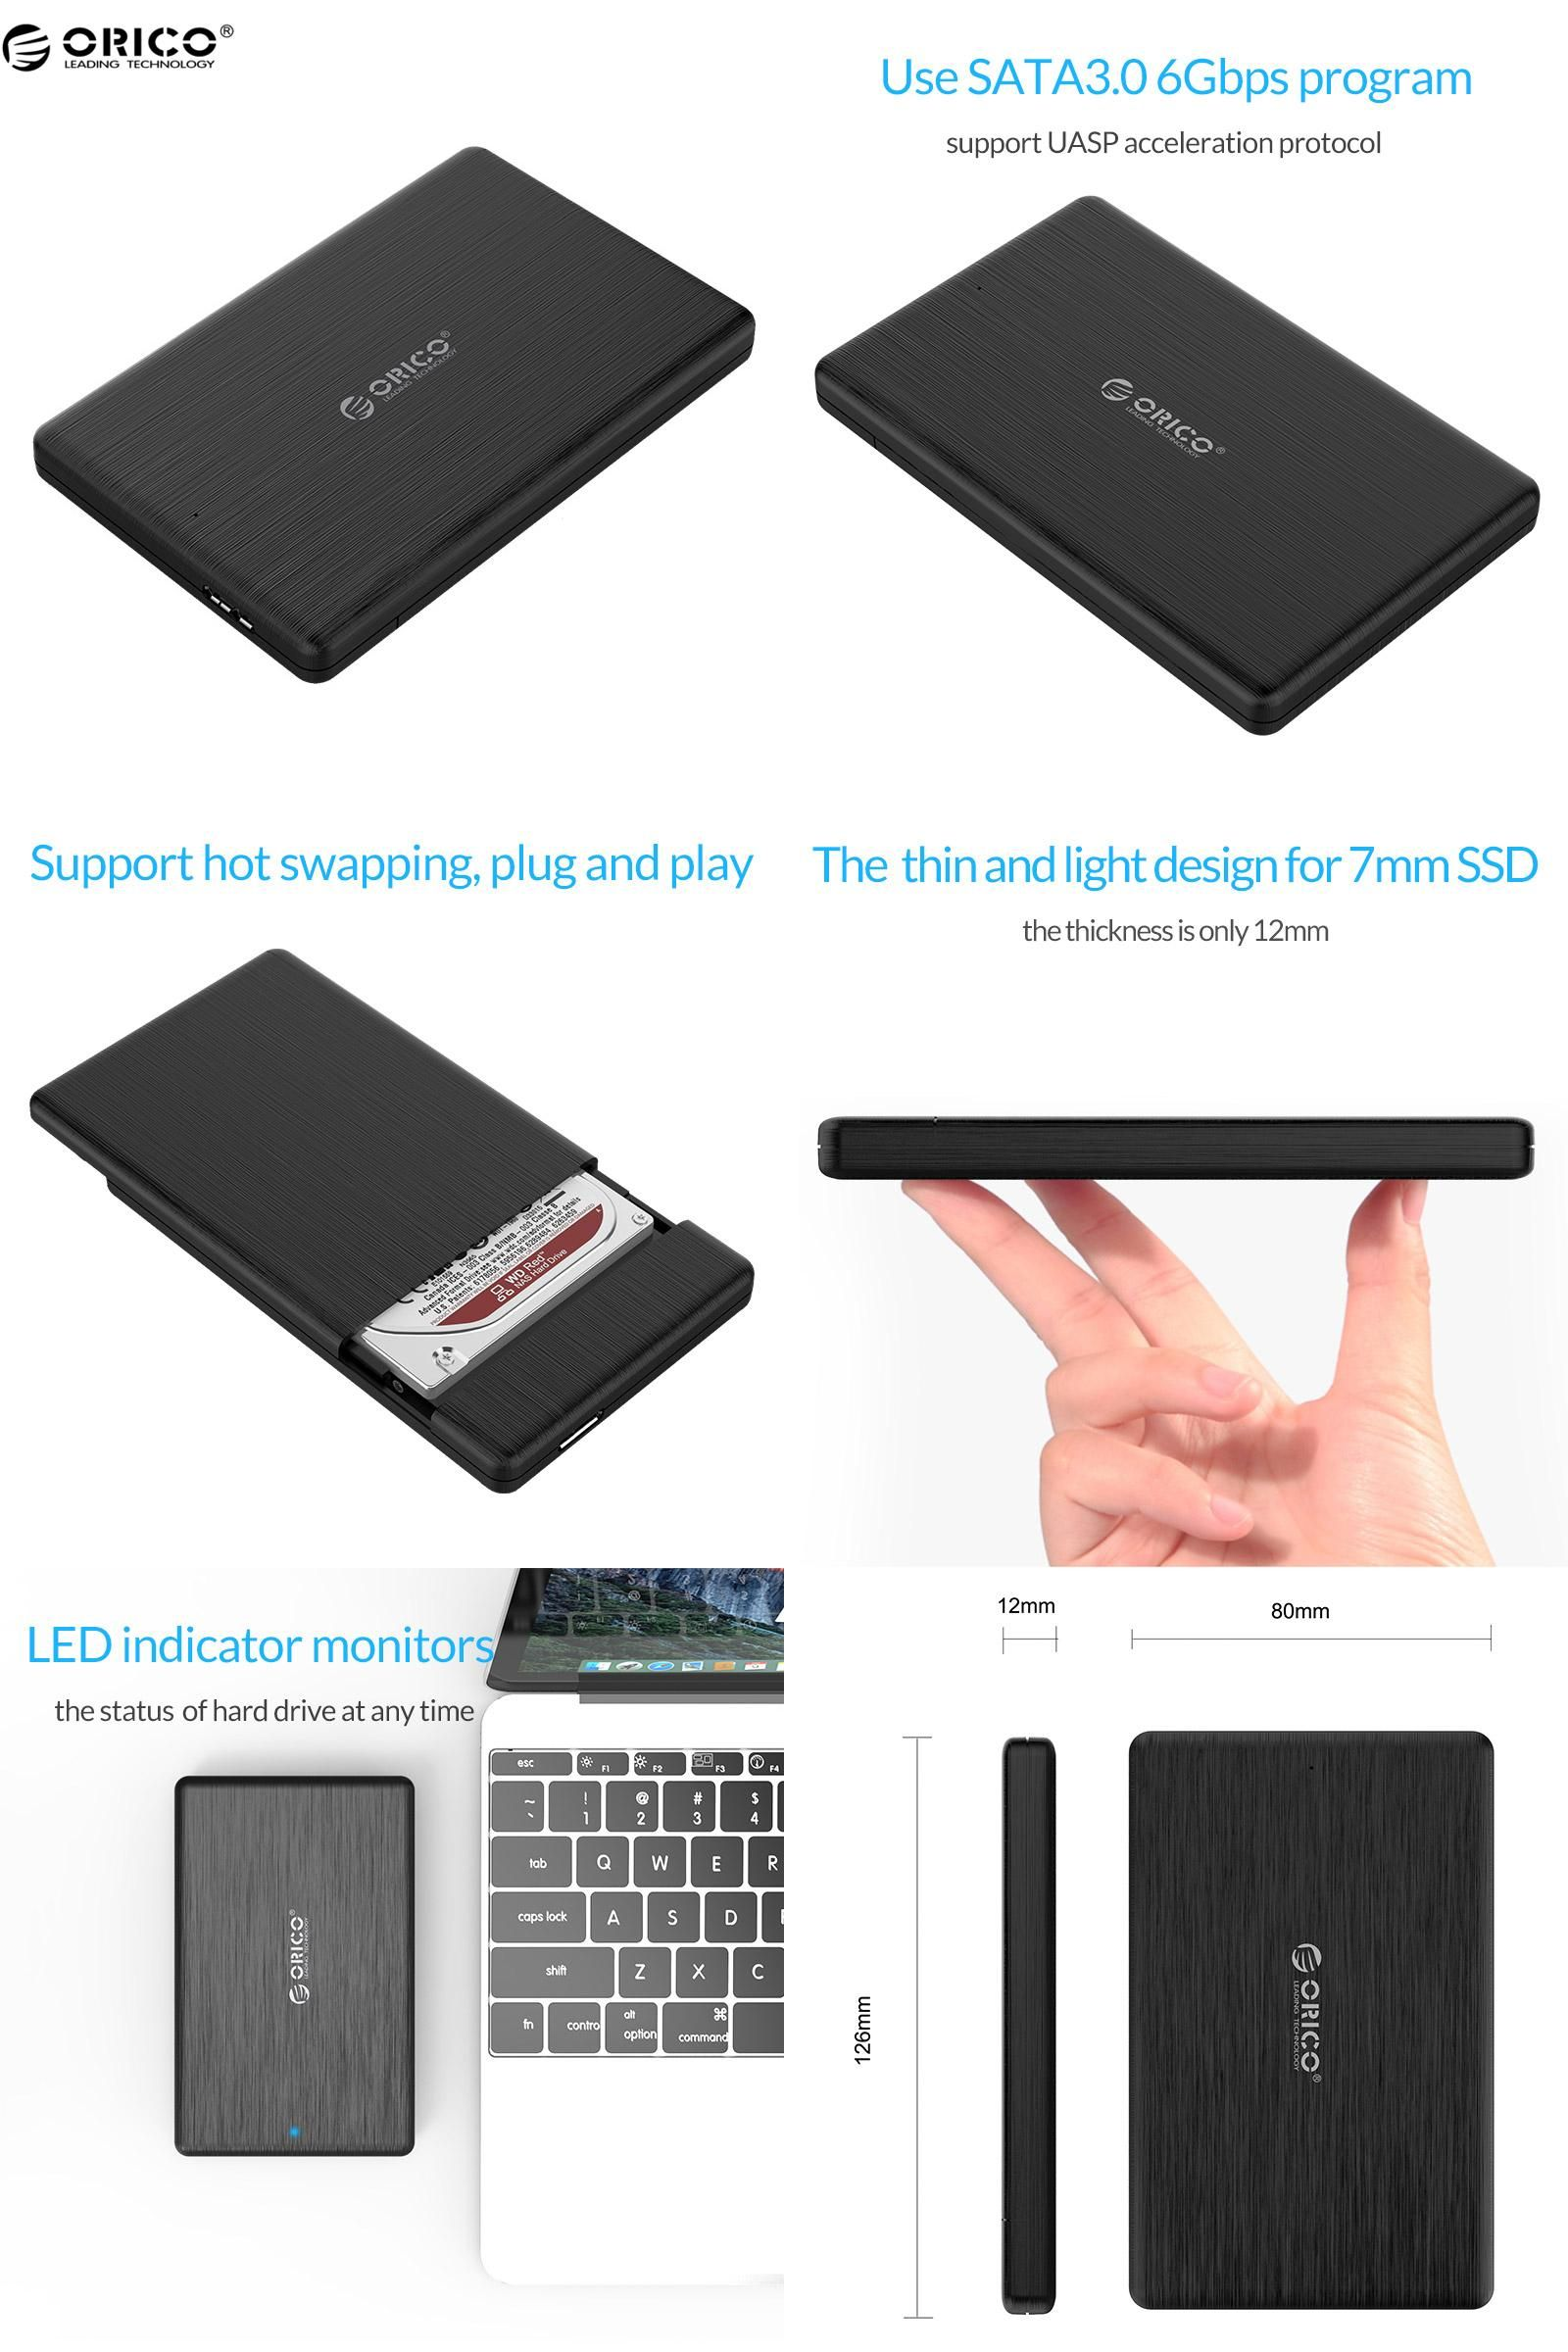 Visit To Buy Orico 2578u3 25 Inch Hdd Case Usb30 Micro B External Kabel Sata Iii Usb 30 For Ssd With Otg Function